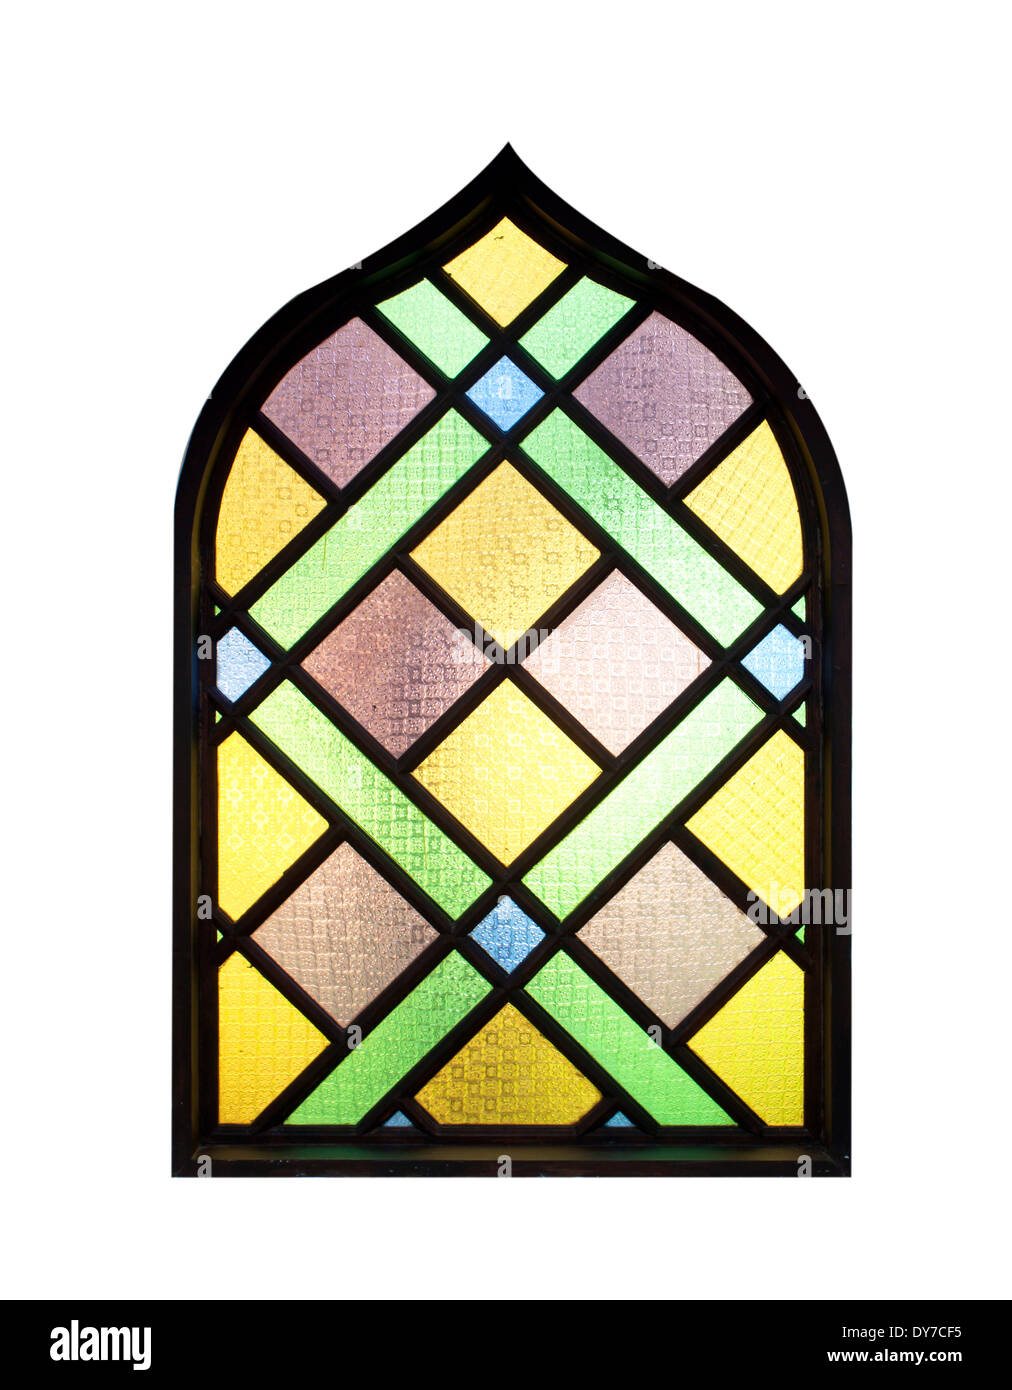 Multi-colored glass window isolated on white background. - Stock Image